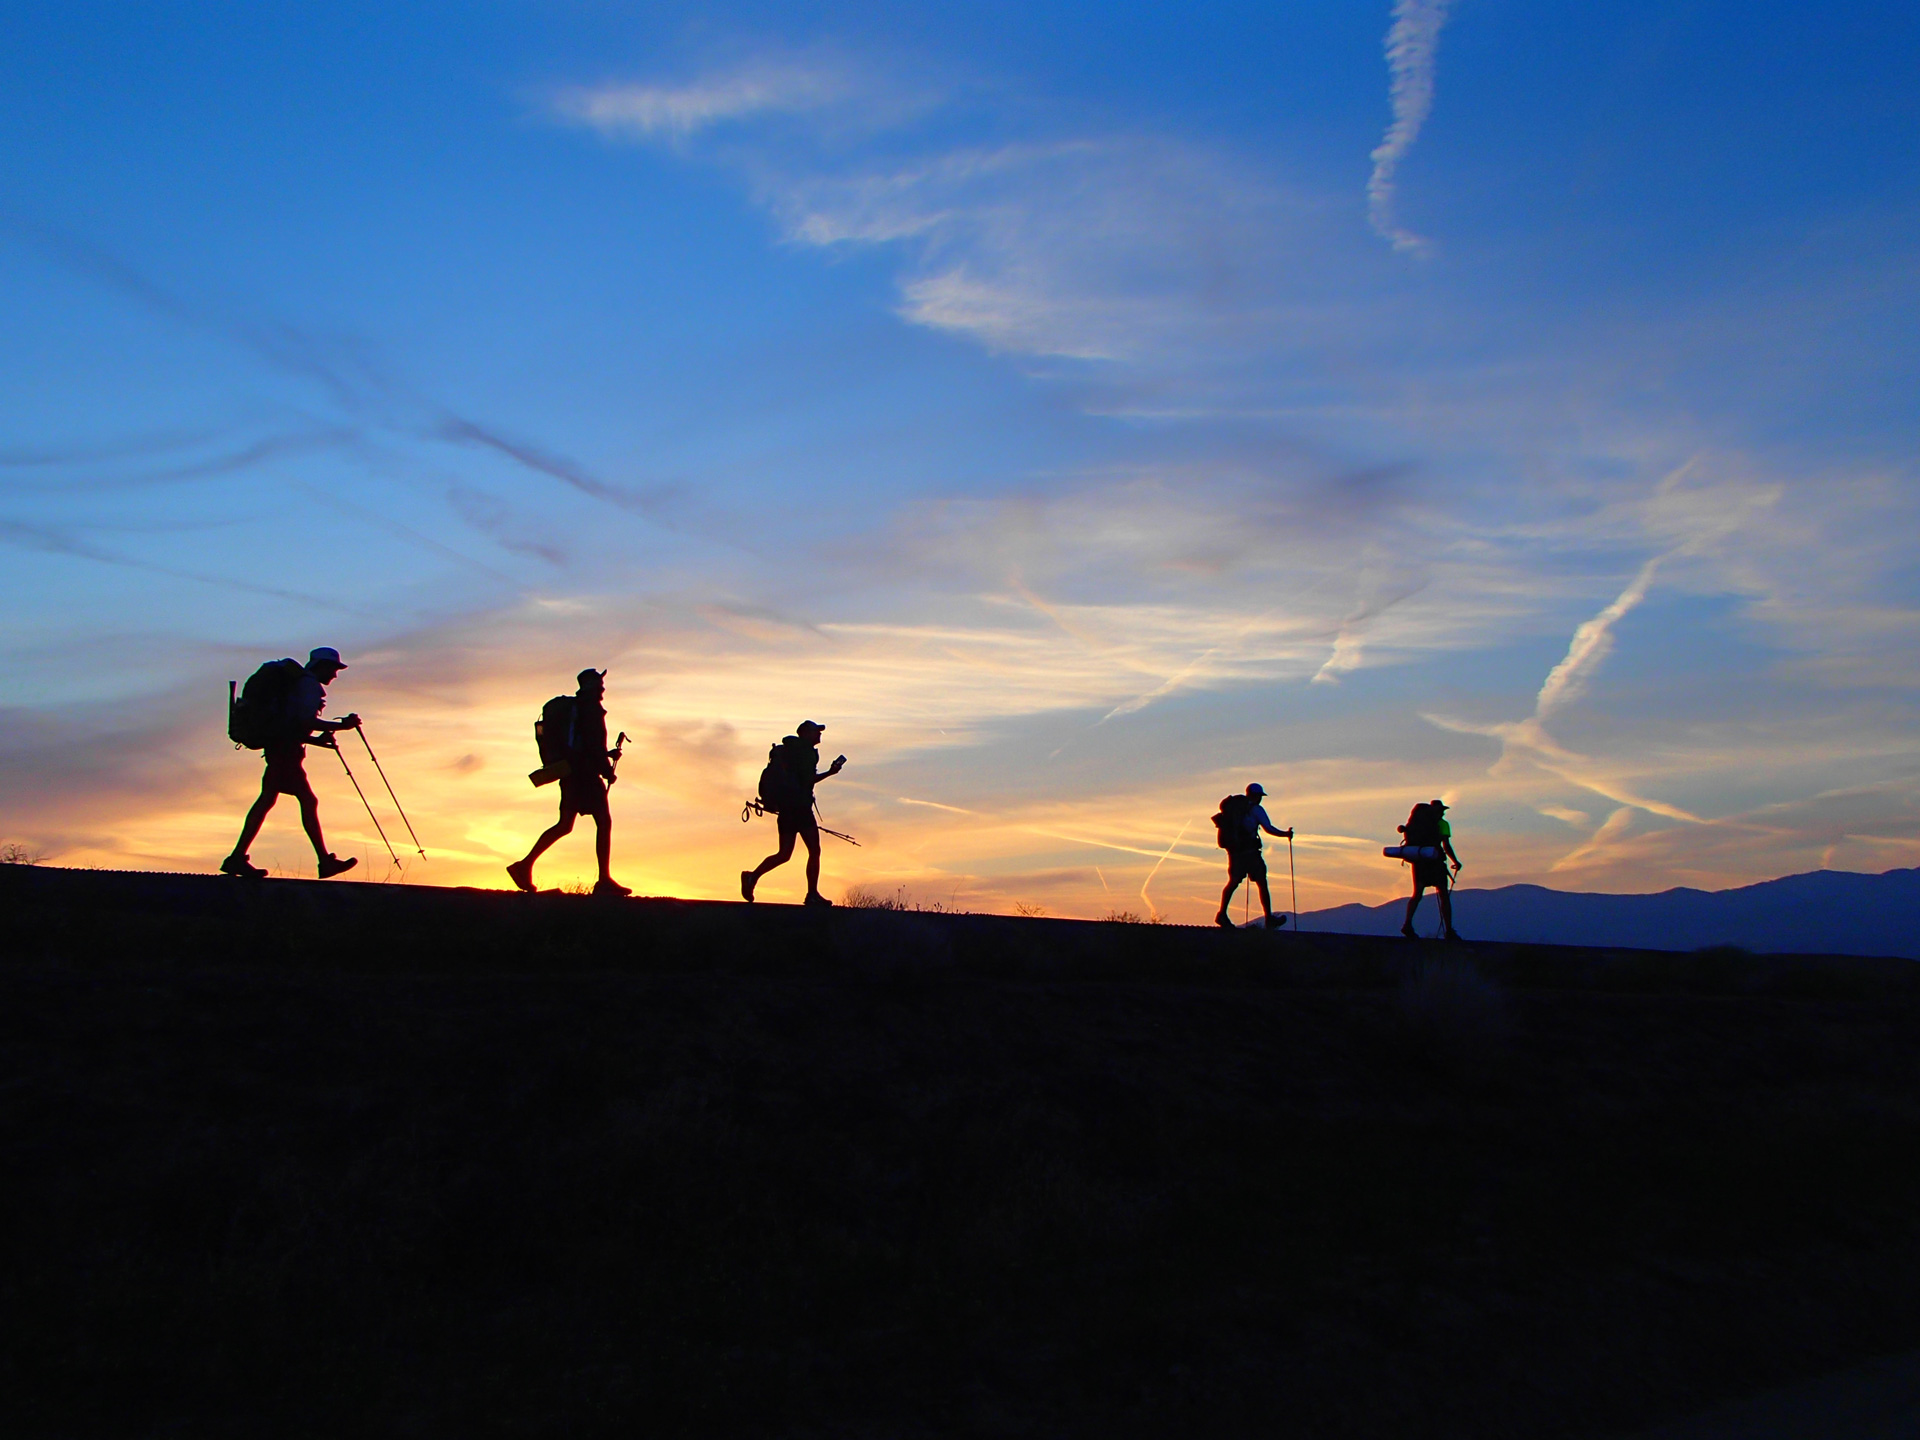 Sunset behind hikers walking along the top of the Los Angeles Aqueduct in the Mojave Desert. Photo by Clayton Feider-Sullivan.